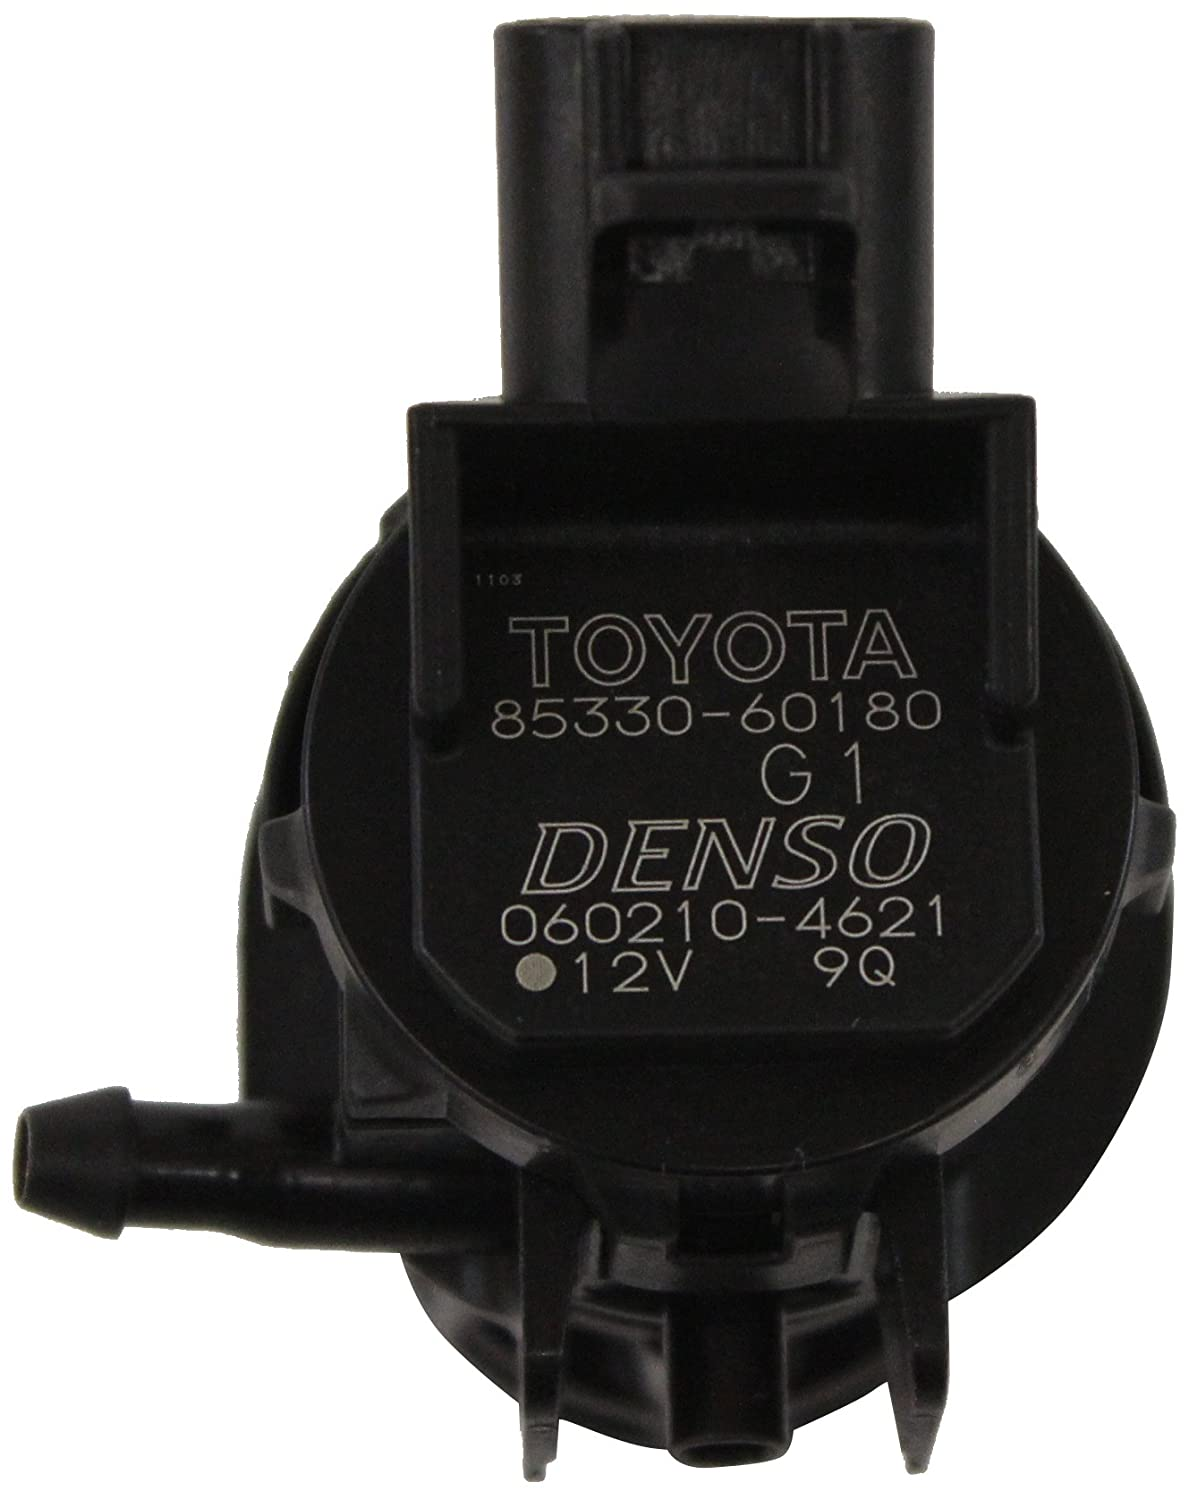 Genuine Toyota 85330-60180 Washer Motor and Pump Assembly